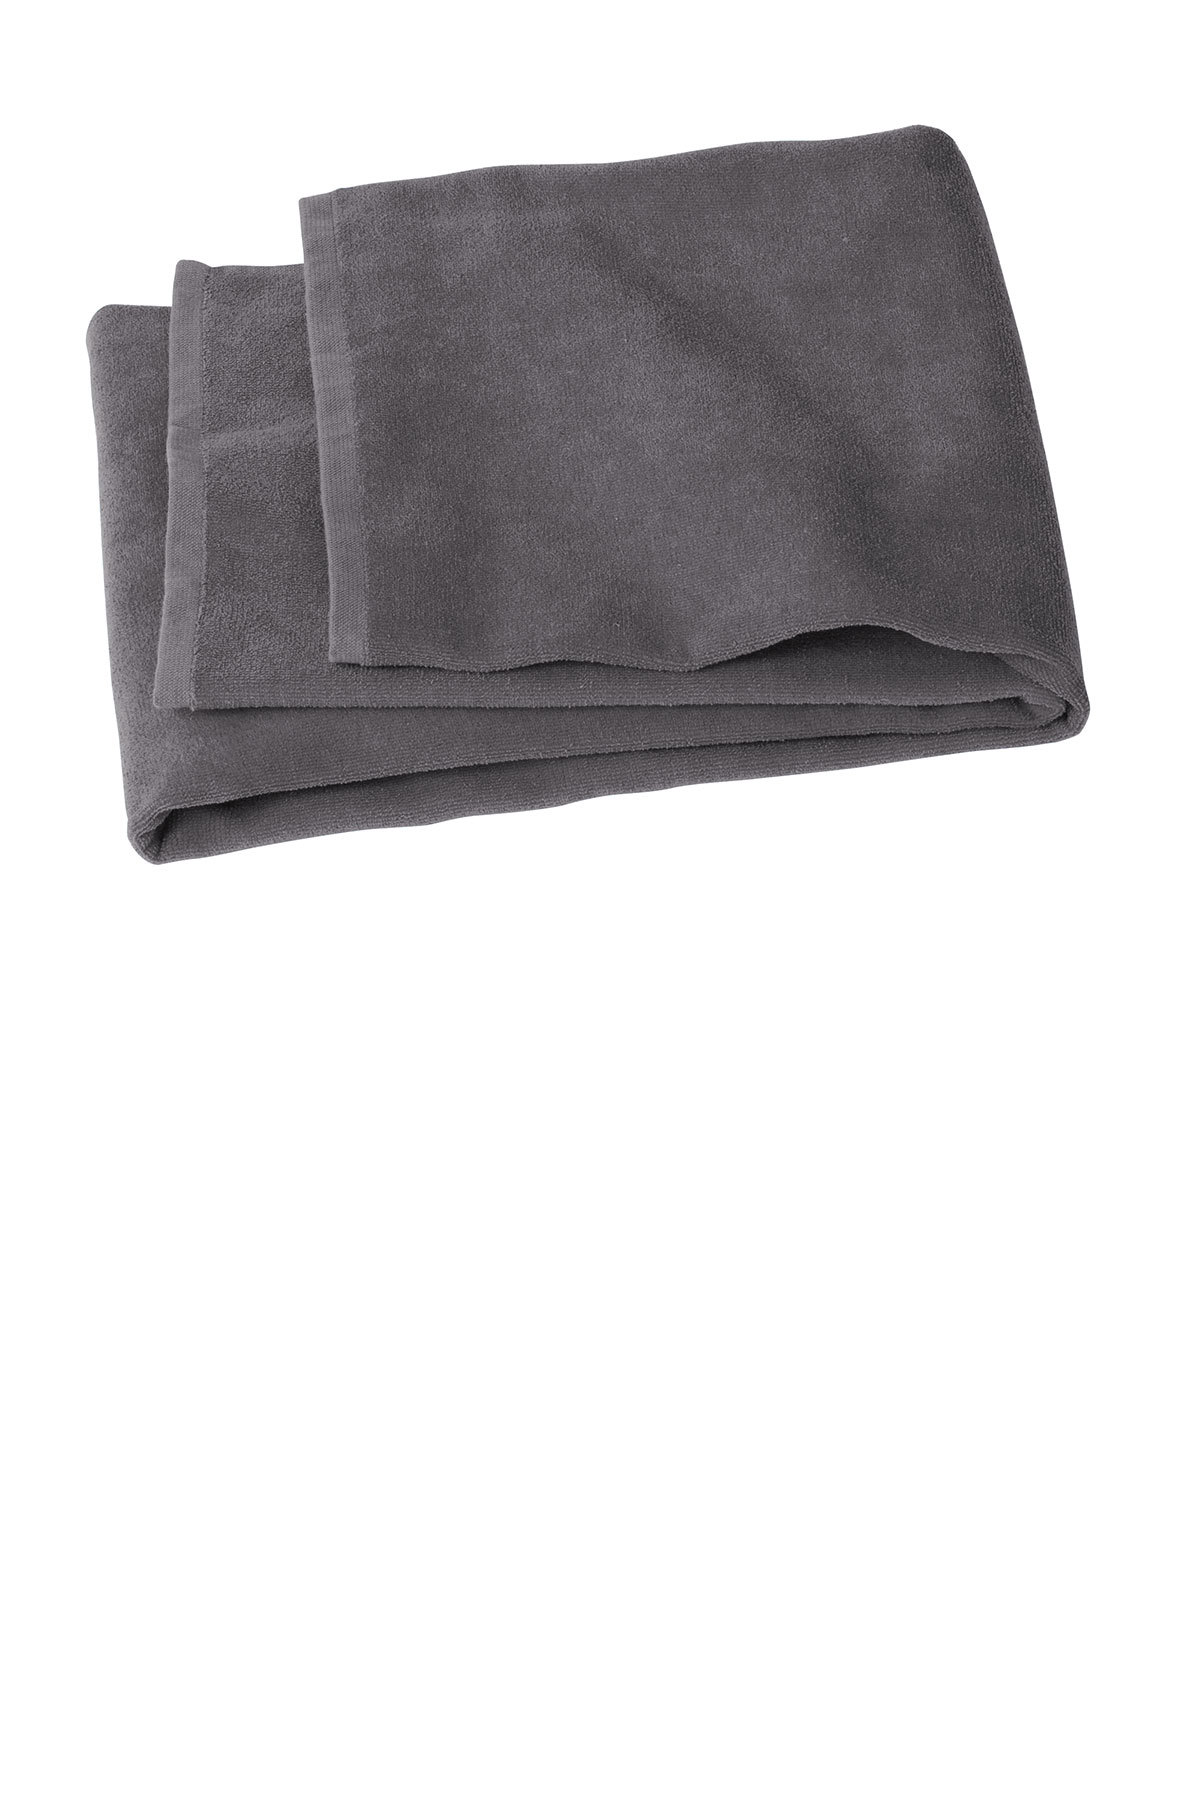 click to view Graphite Grey